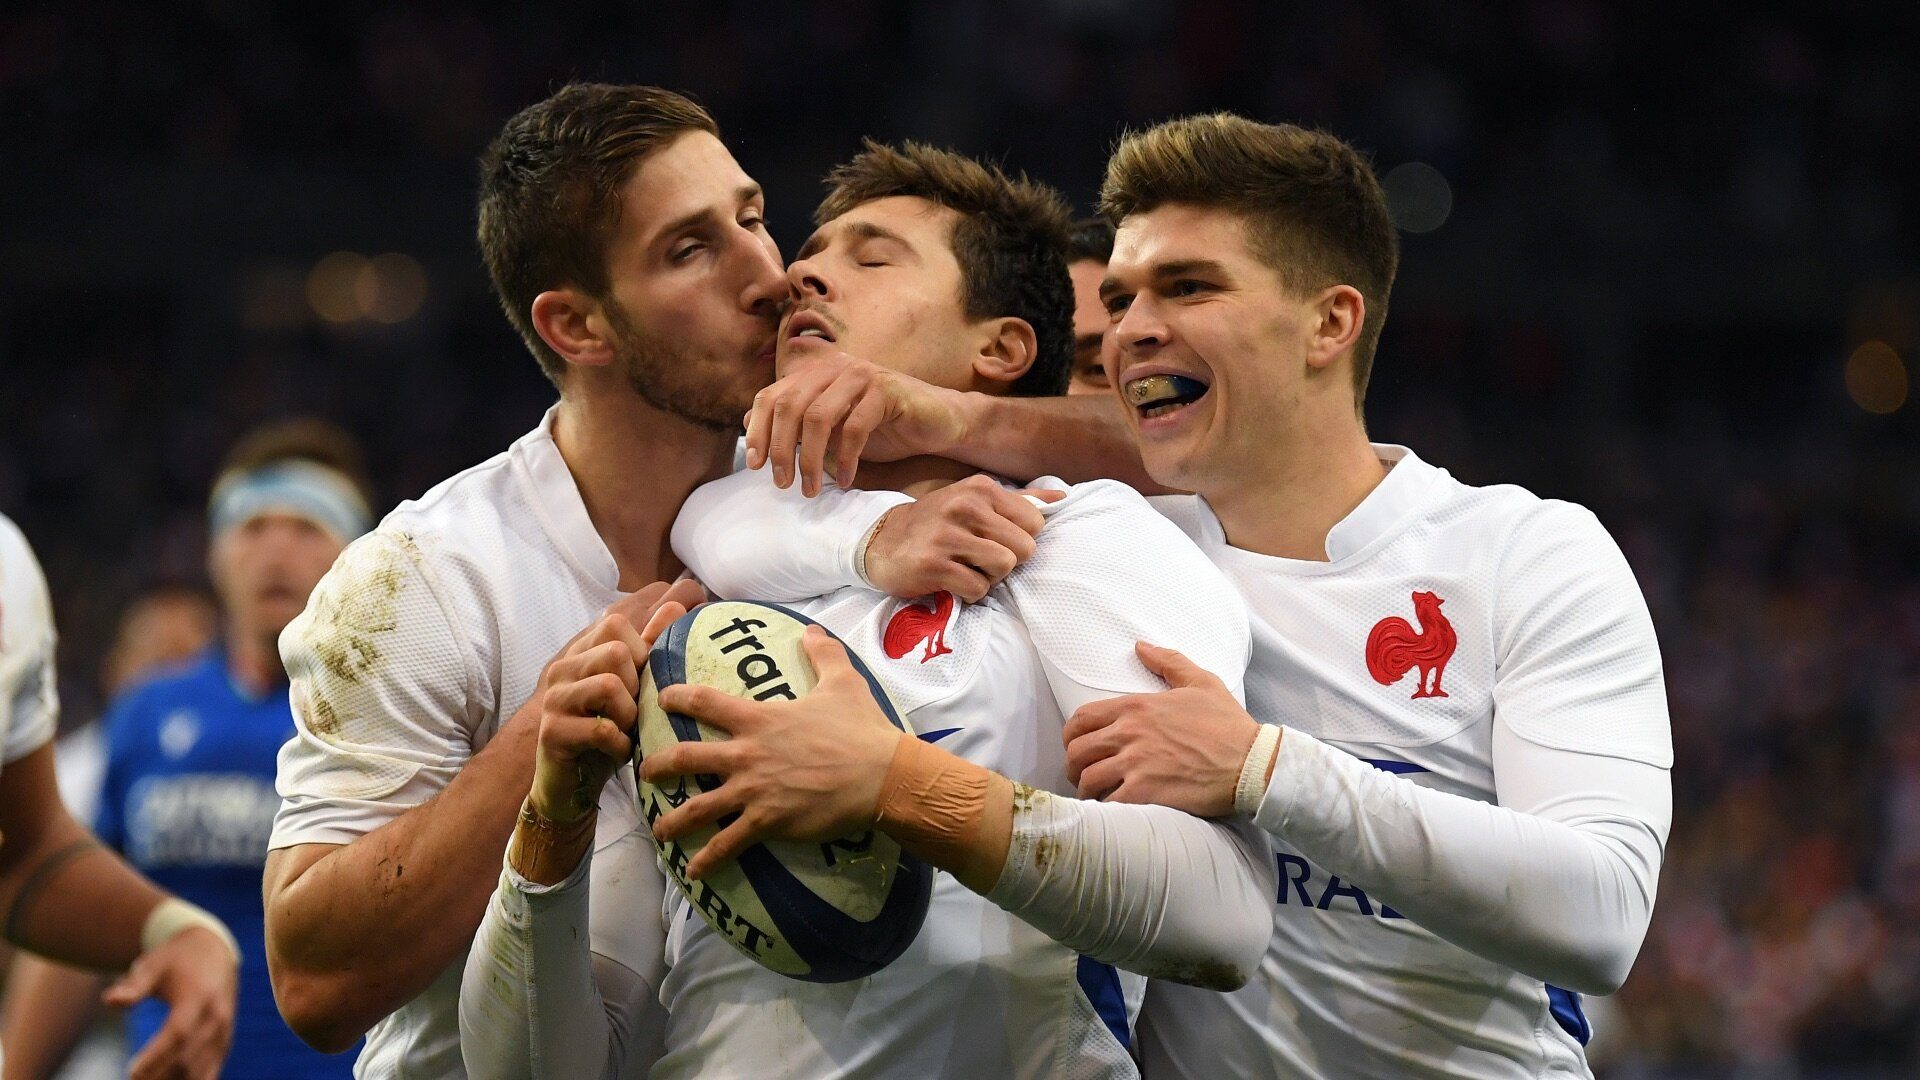 France make 13 changes in experimental side for Italy - Autumn Nations Cup